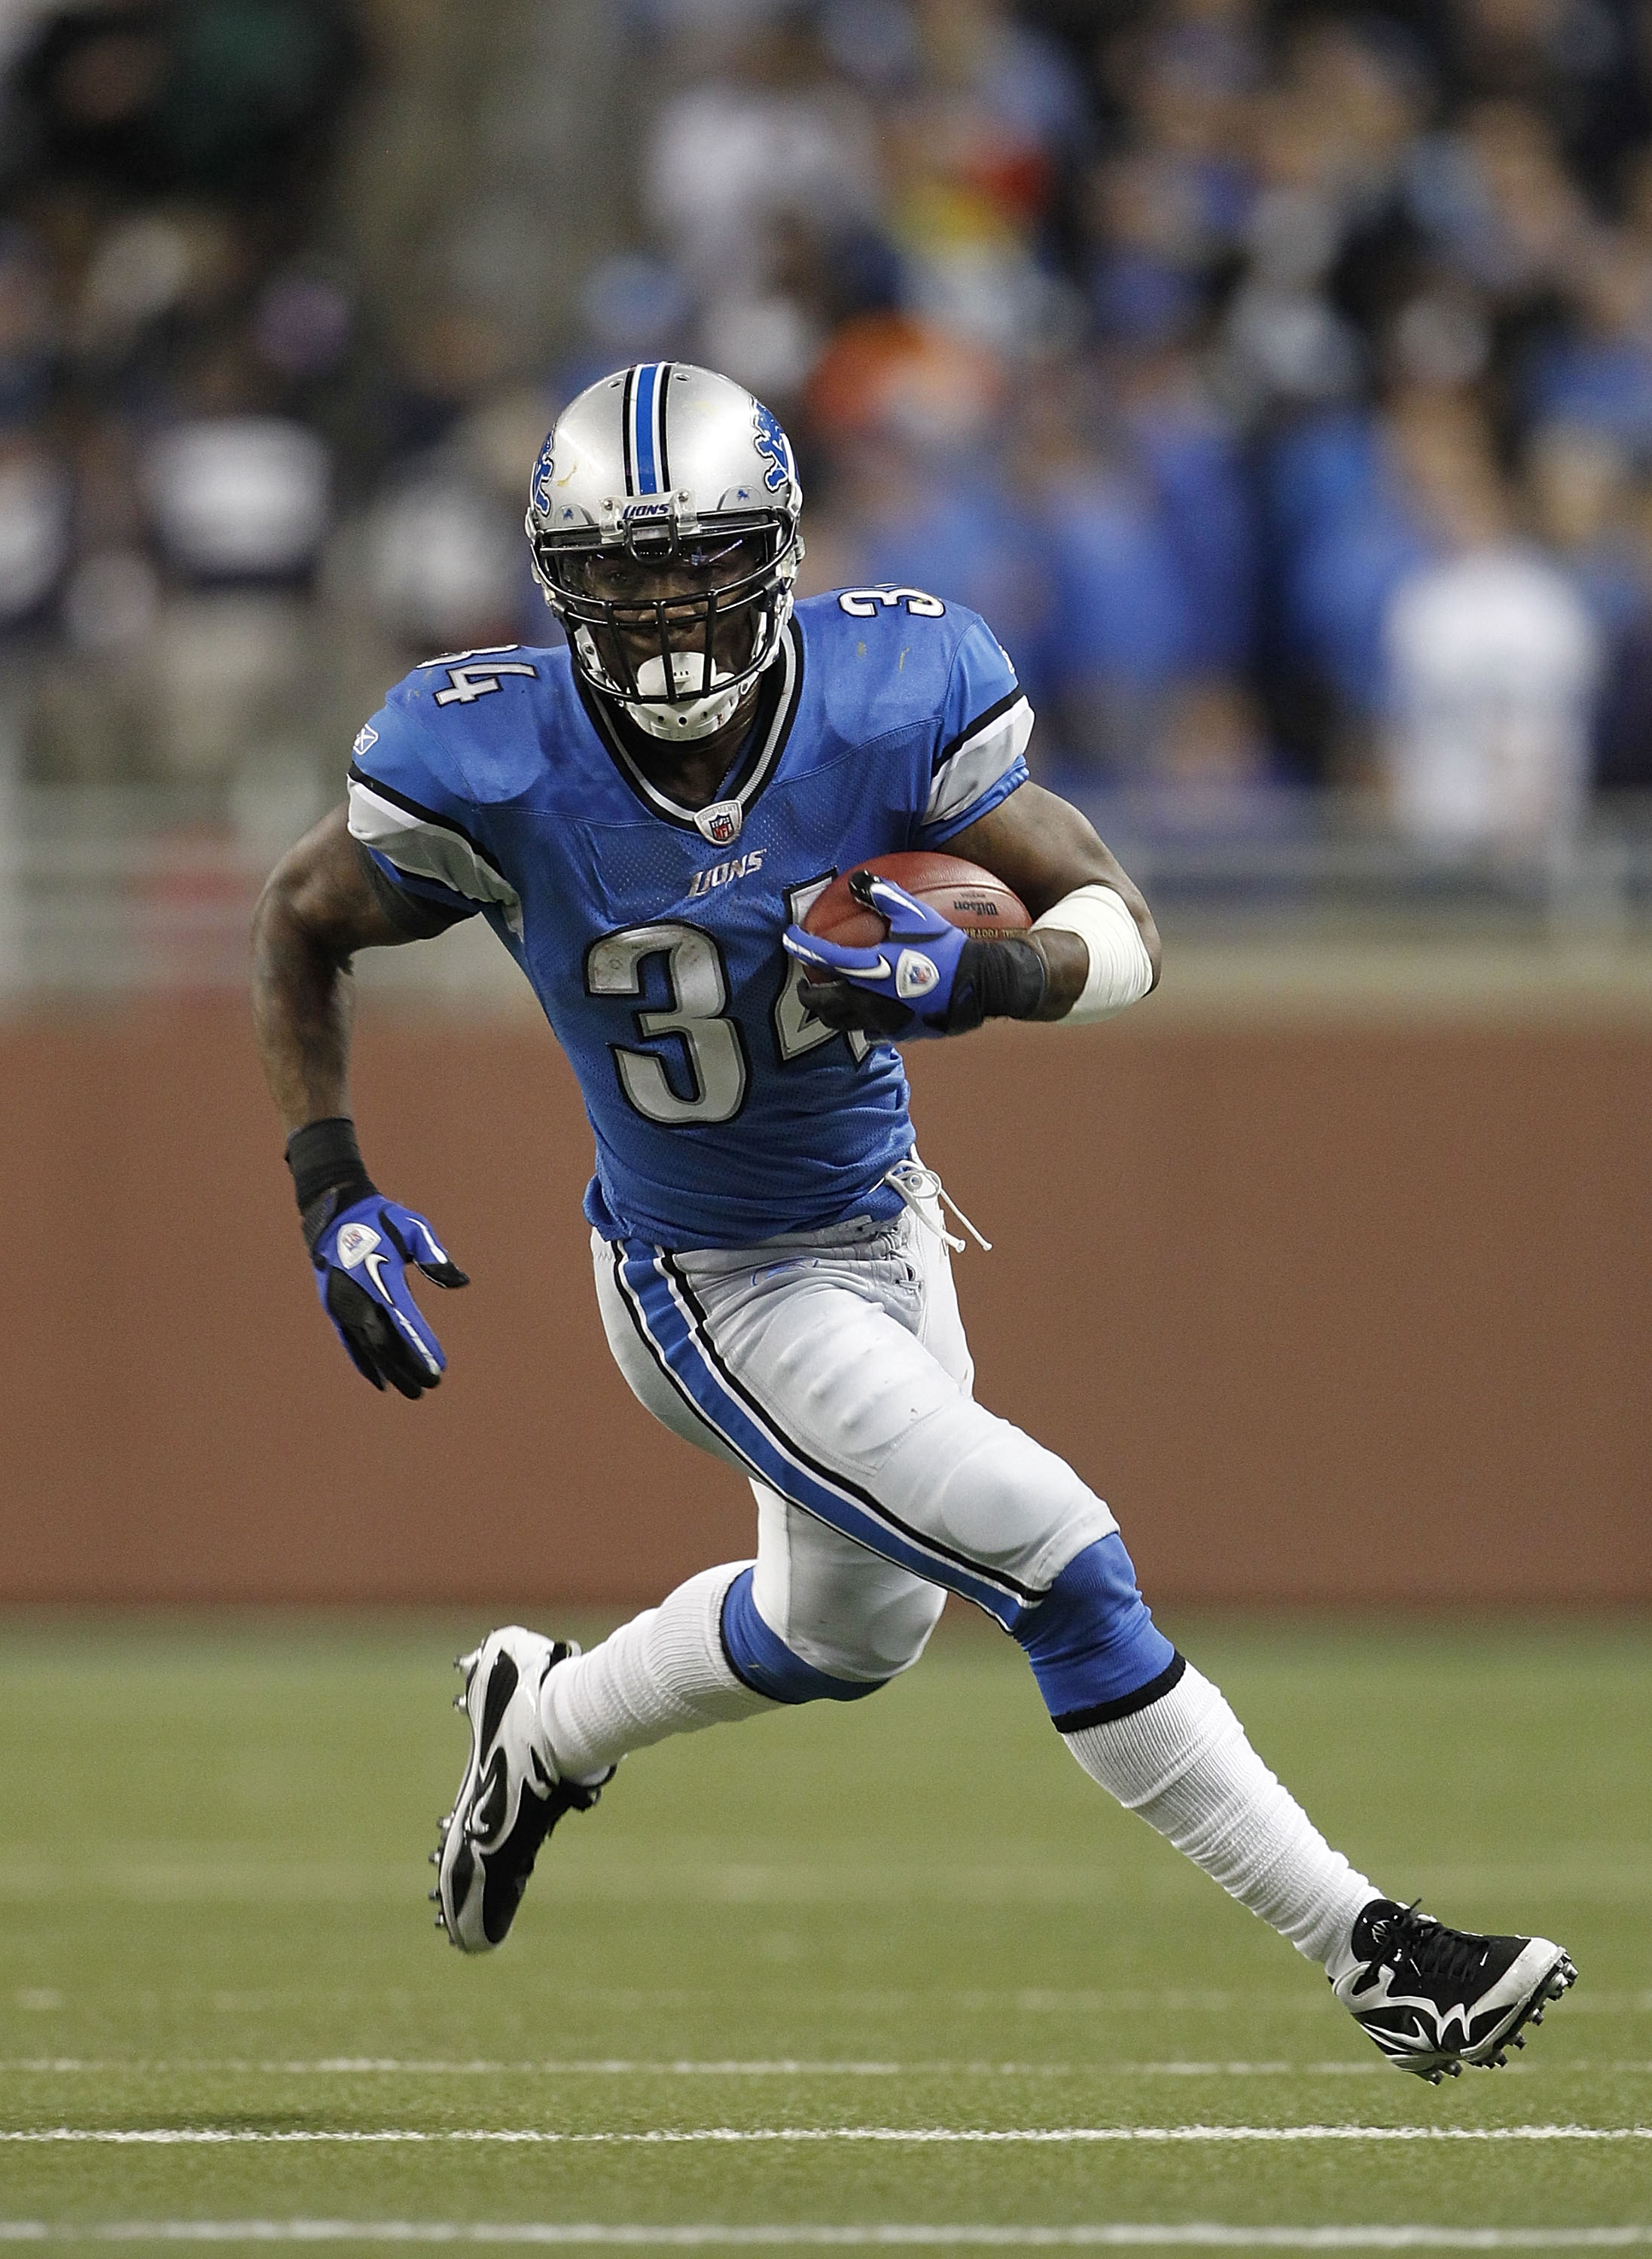 Smith lost favor in Detroit because of injury and the investment in Jahvid Best.